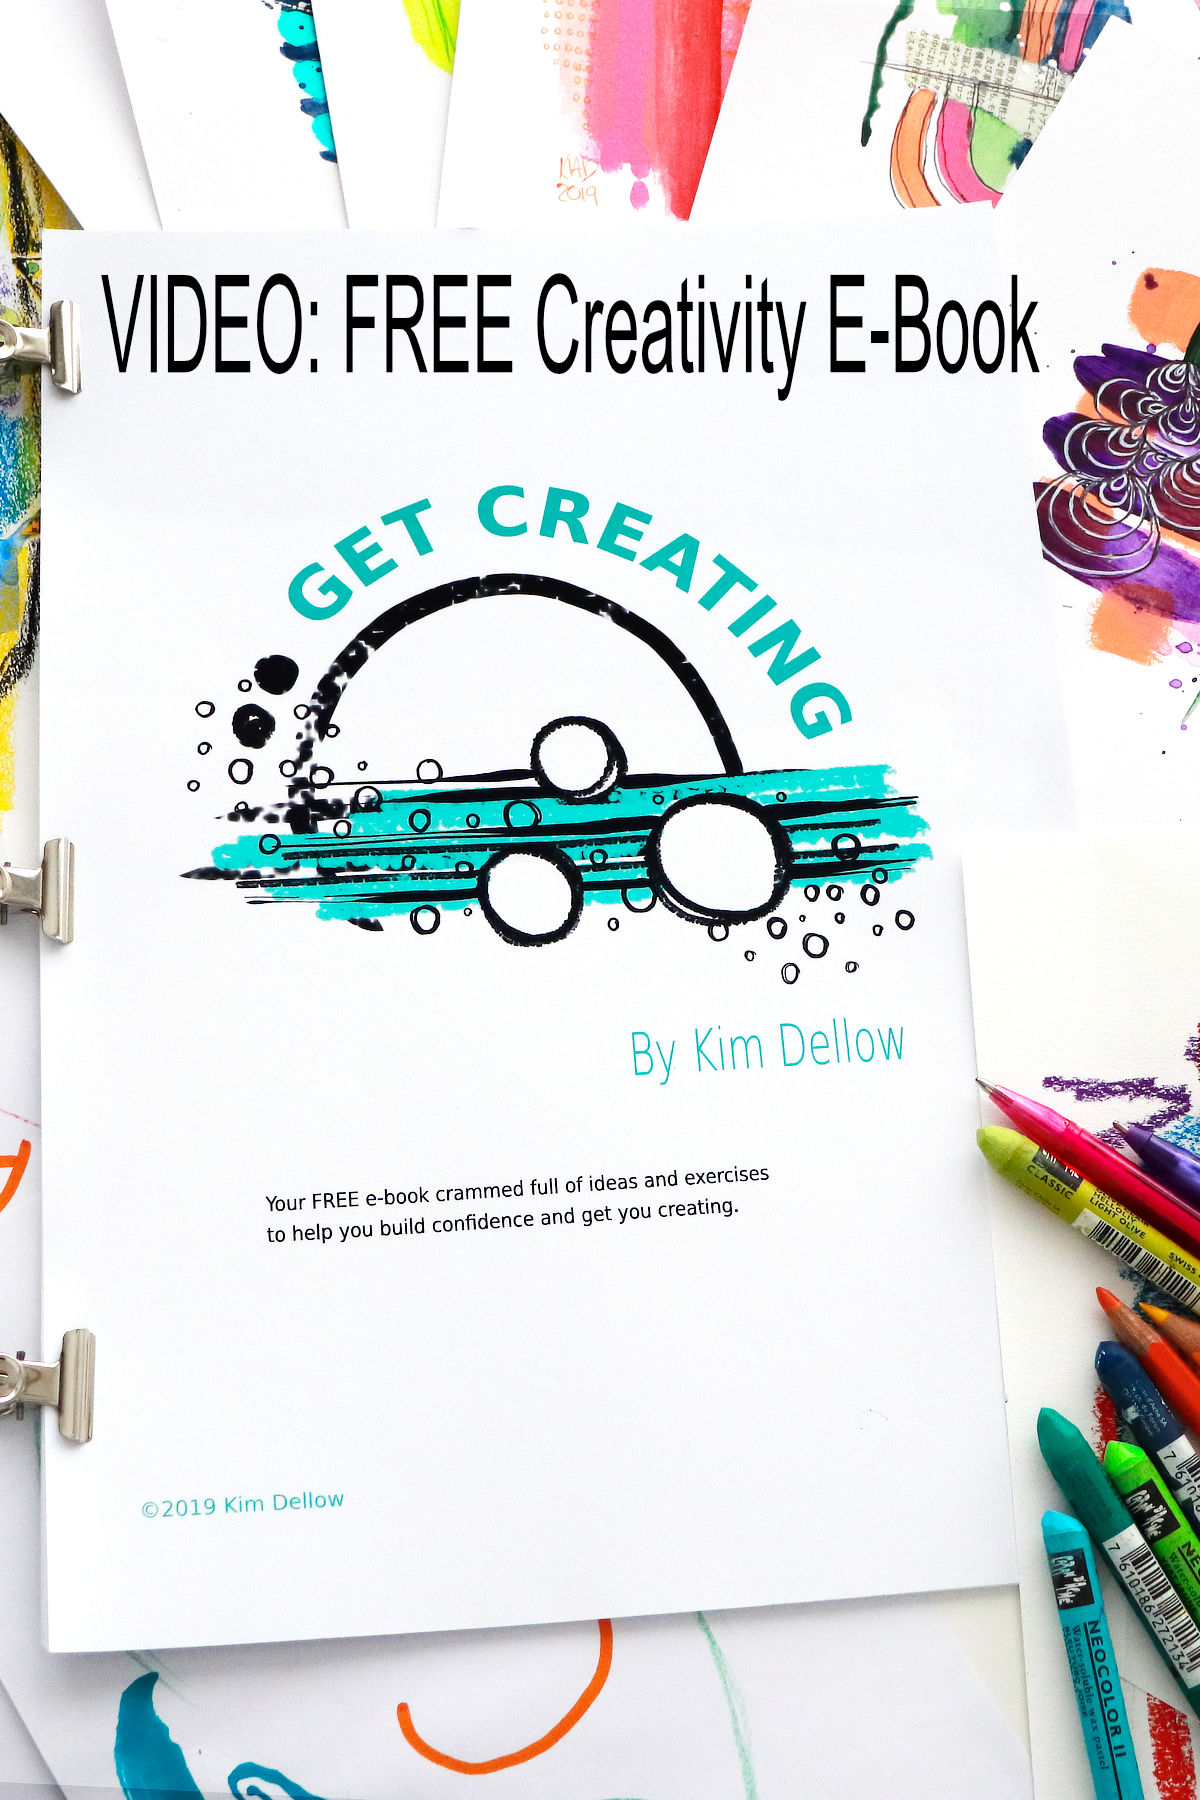 The FREE Creativity E-book by Kim Dellow